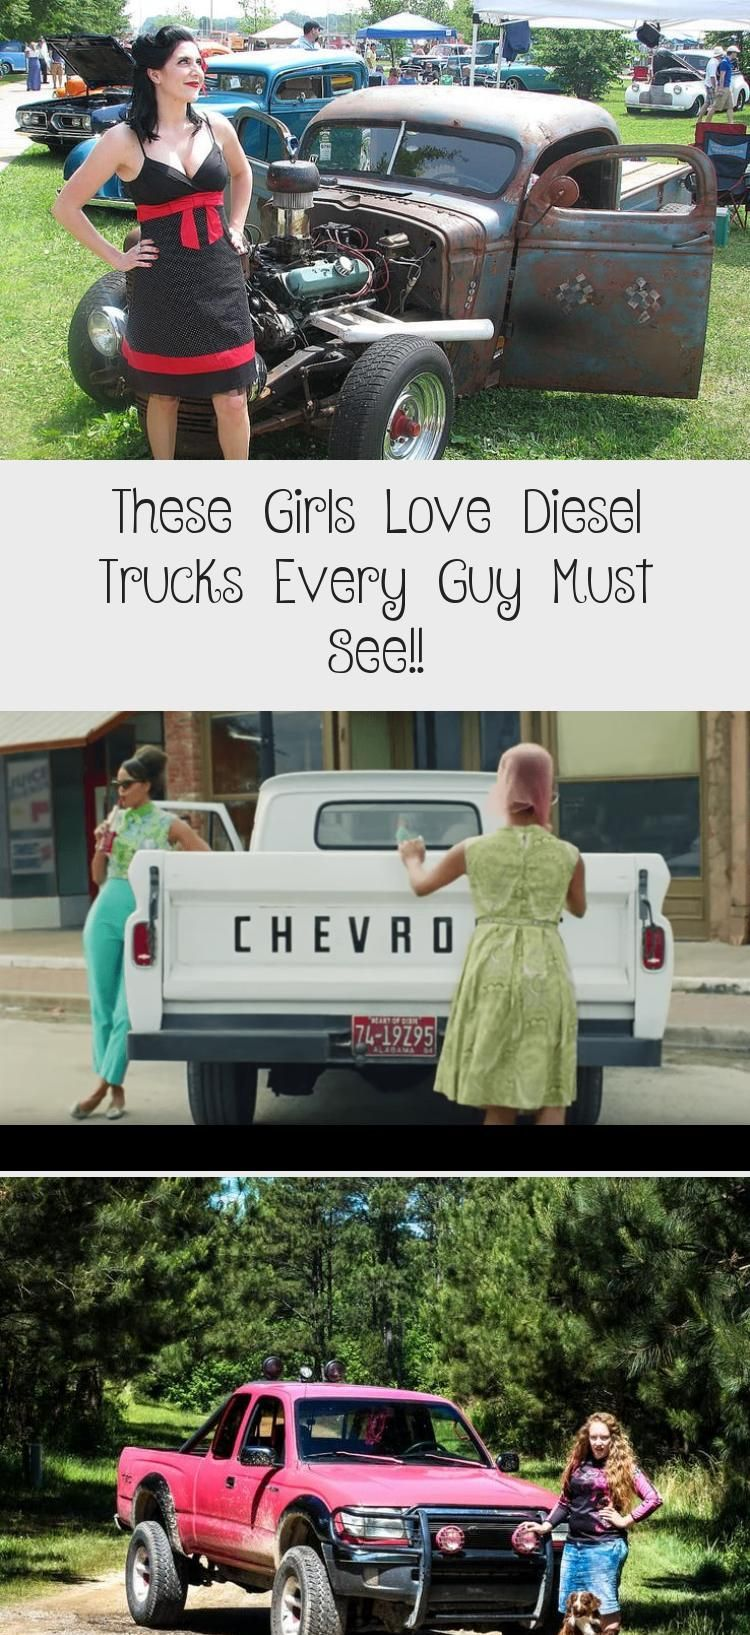 Swimsuit Diesel Truck Forums Naked Girls Png